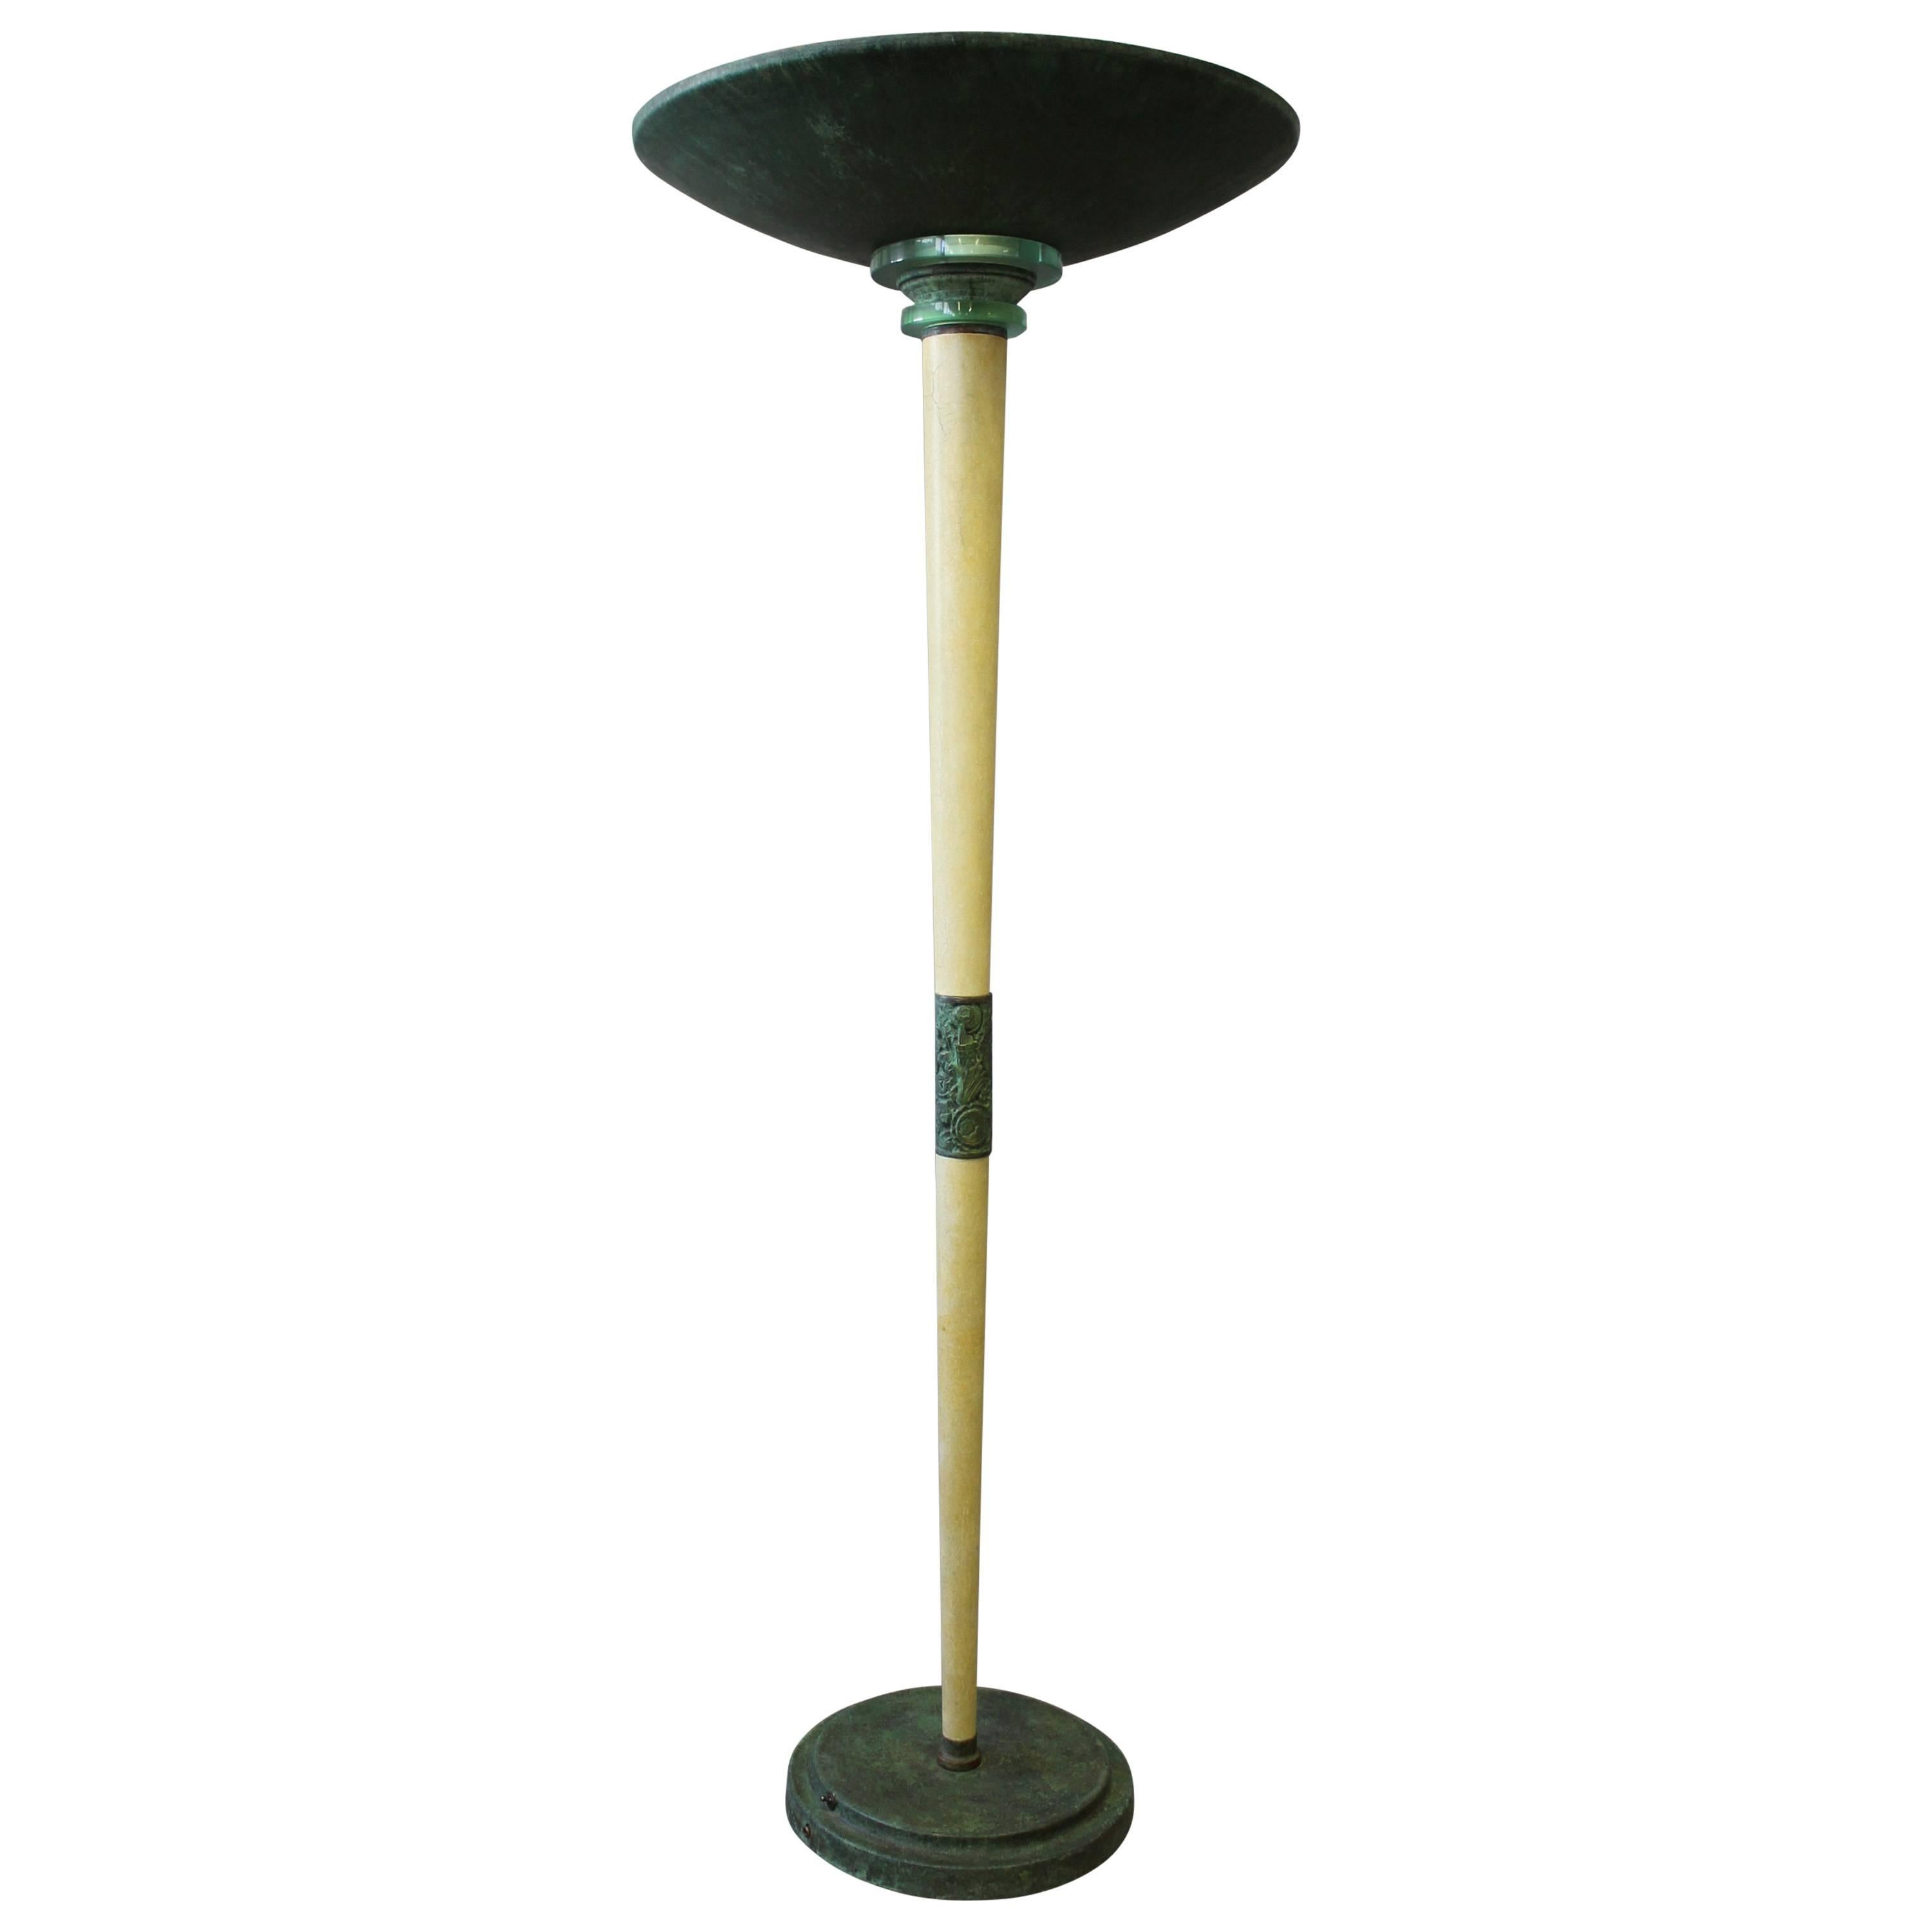 A Large Fine French Art Deco Patina Ed Wood And Metal Floor Lamp For At 1stdibs